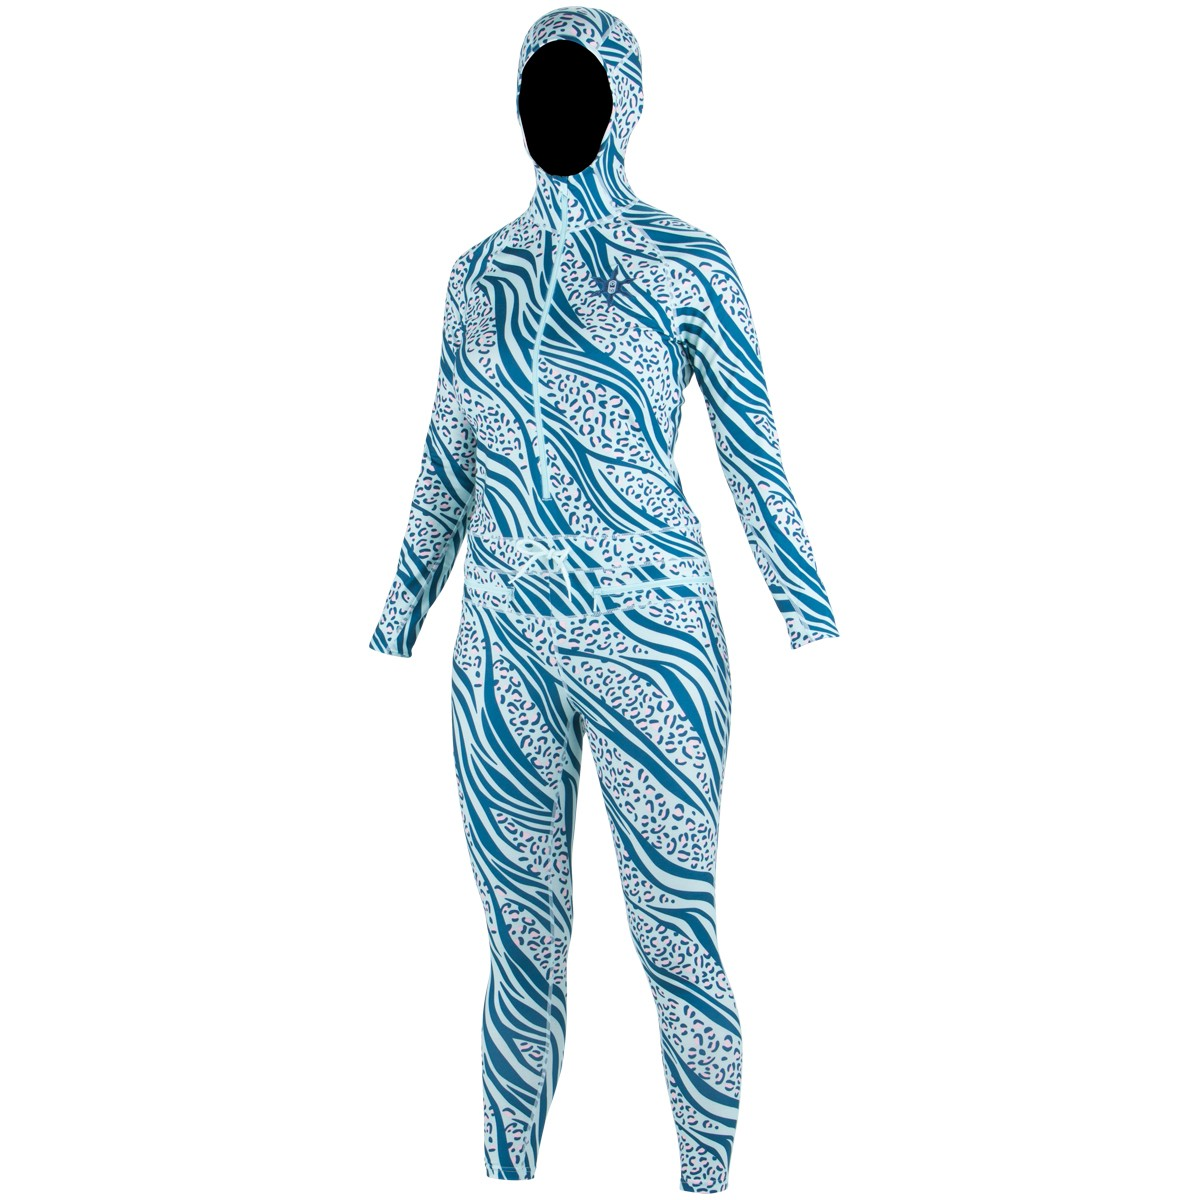 Airblaster Ninja Suit Women's Base Layer 2015 - Malibu Cheebrah